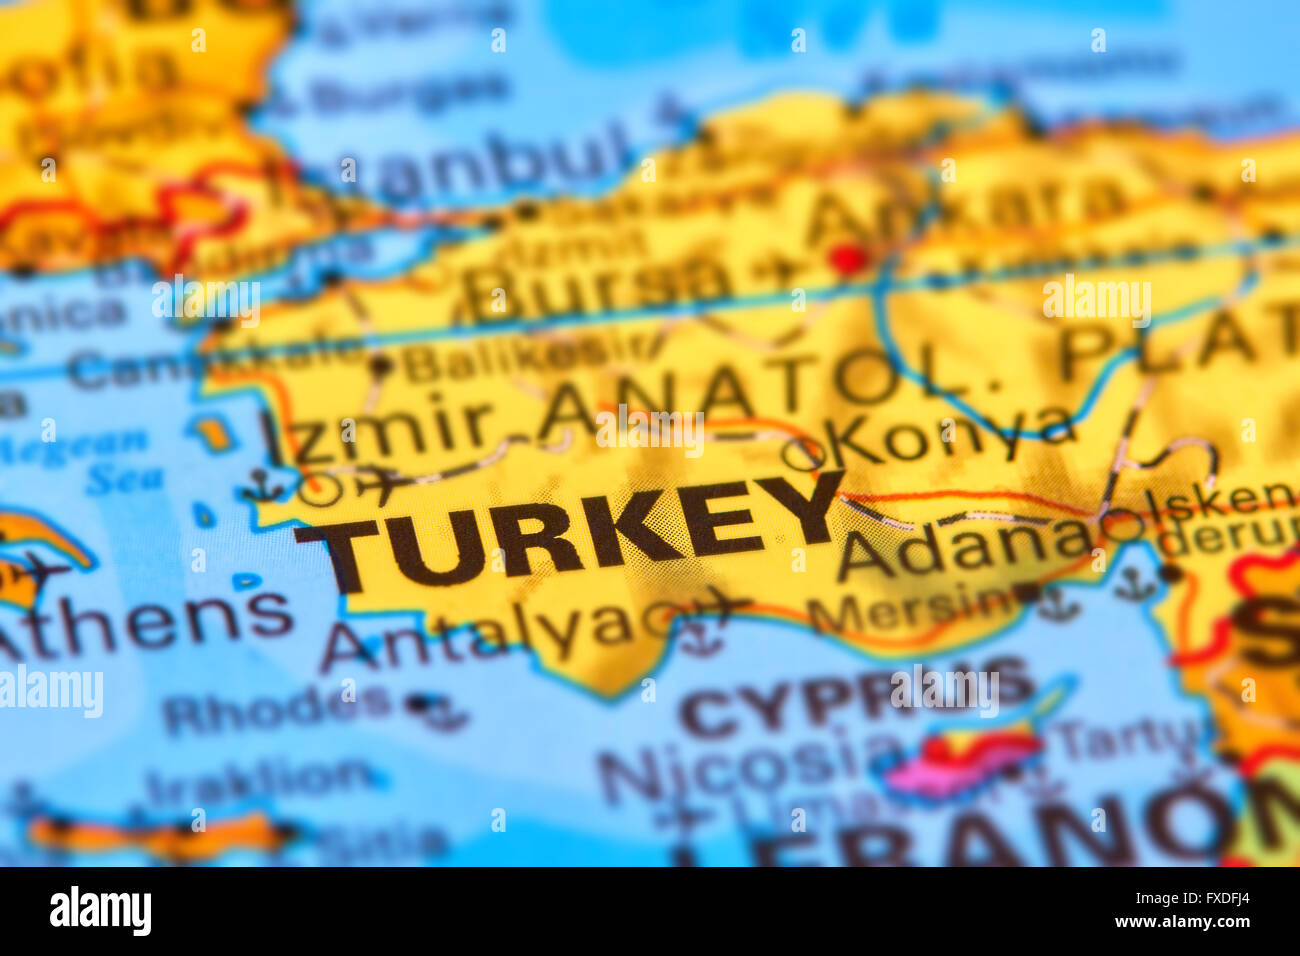 Map Europe Asia Stock Photos & Map Europe Asia Stock Images - Alamy